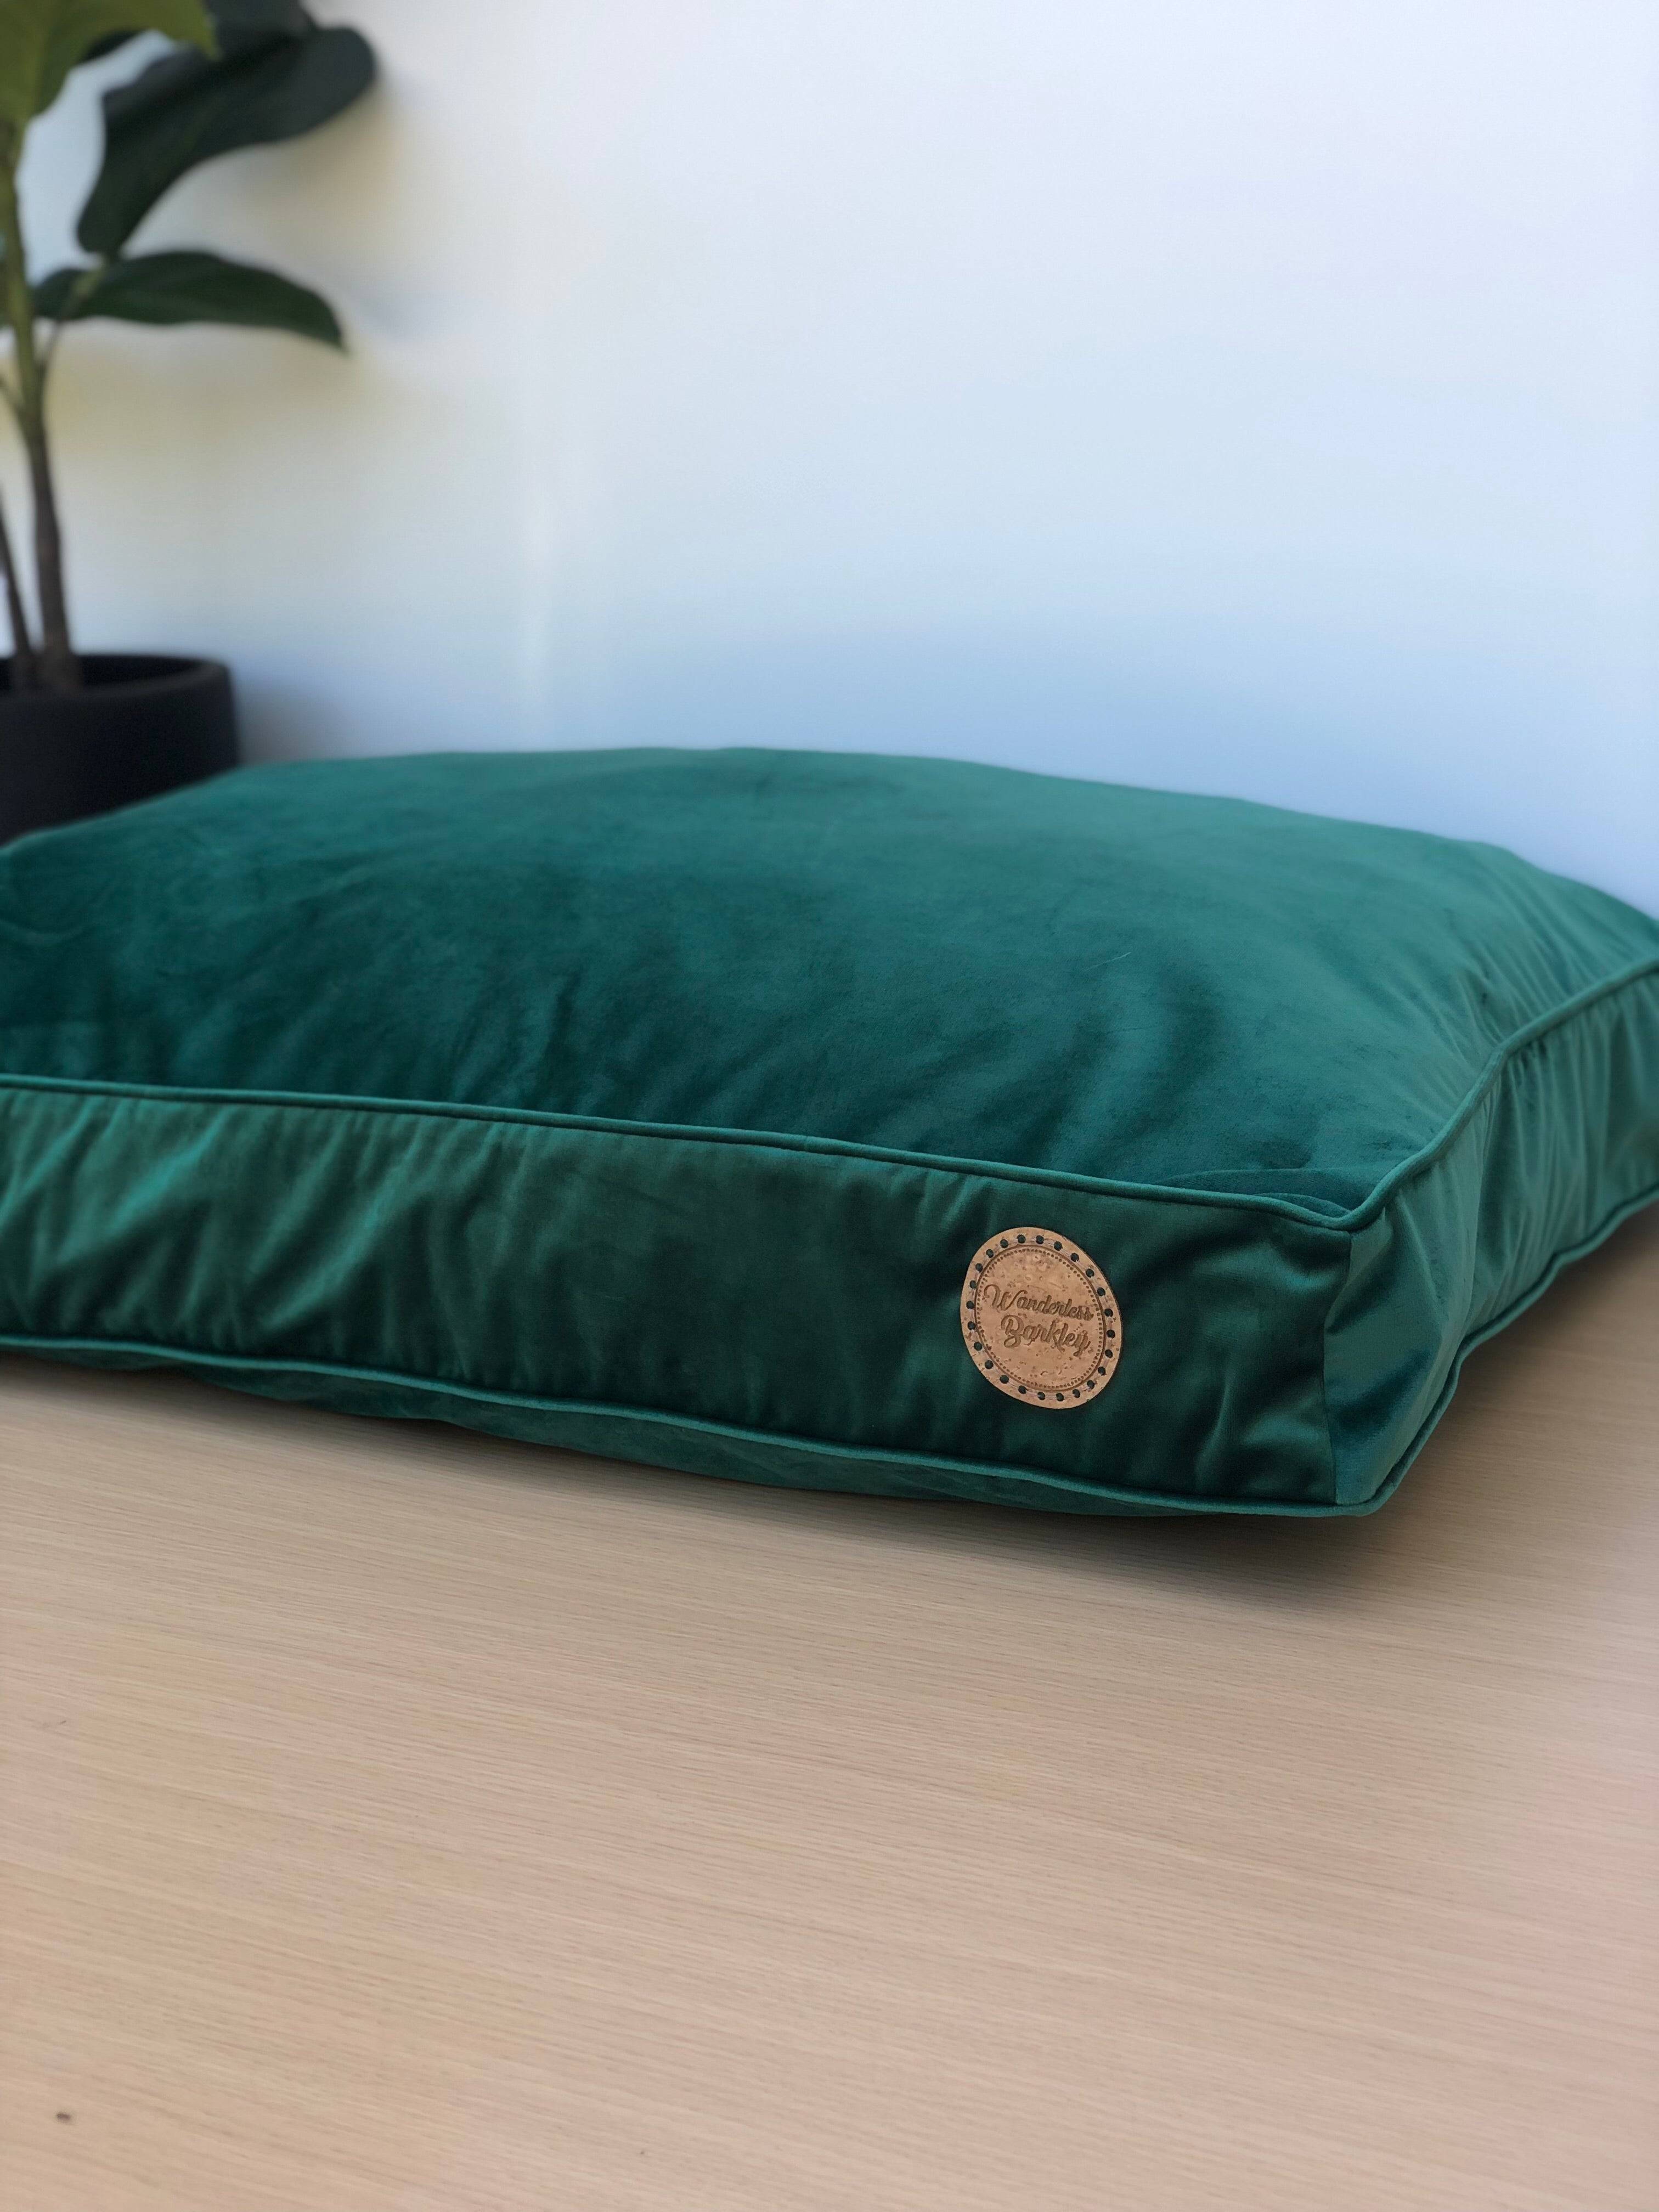 Evergreen - Velvet Spread Dog Bed (Cover Only)